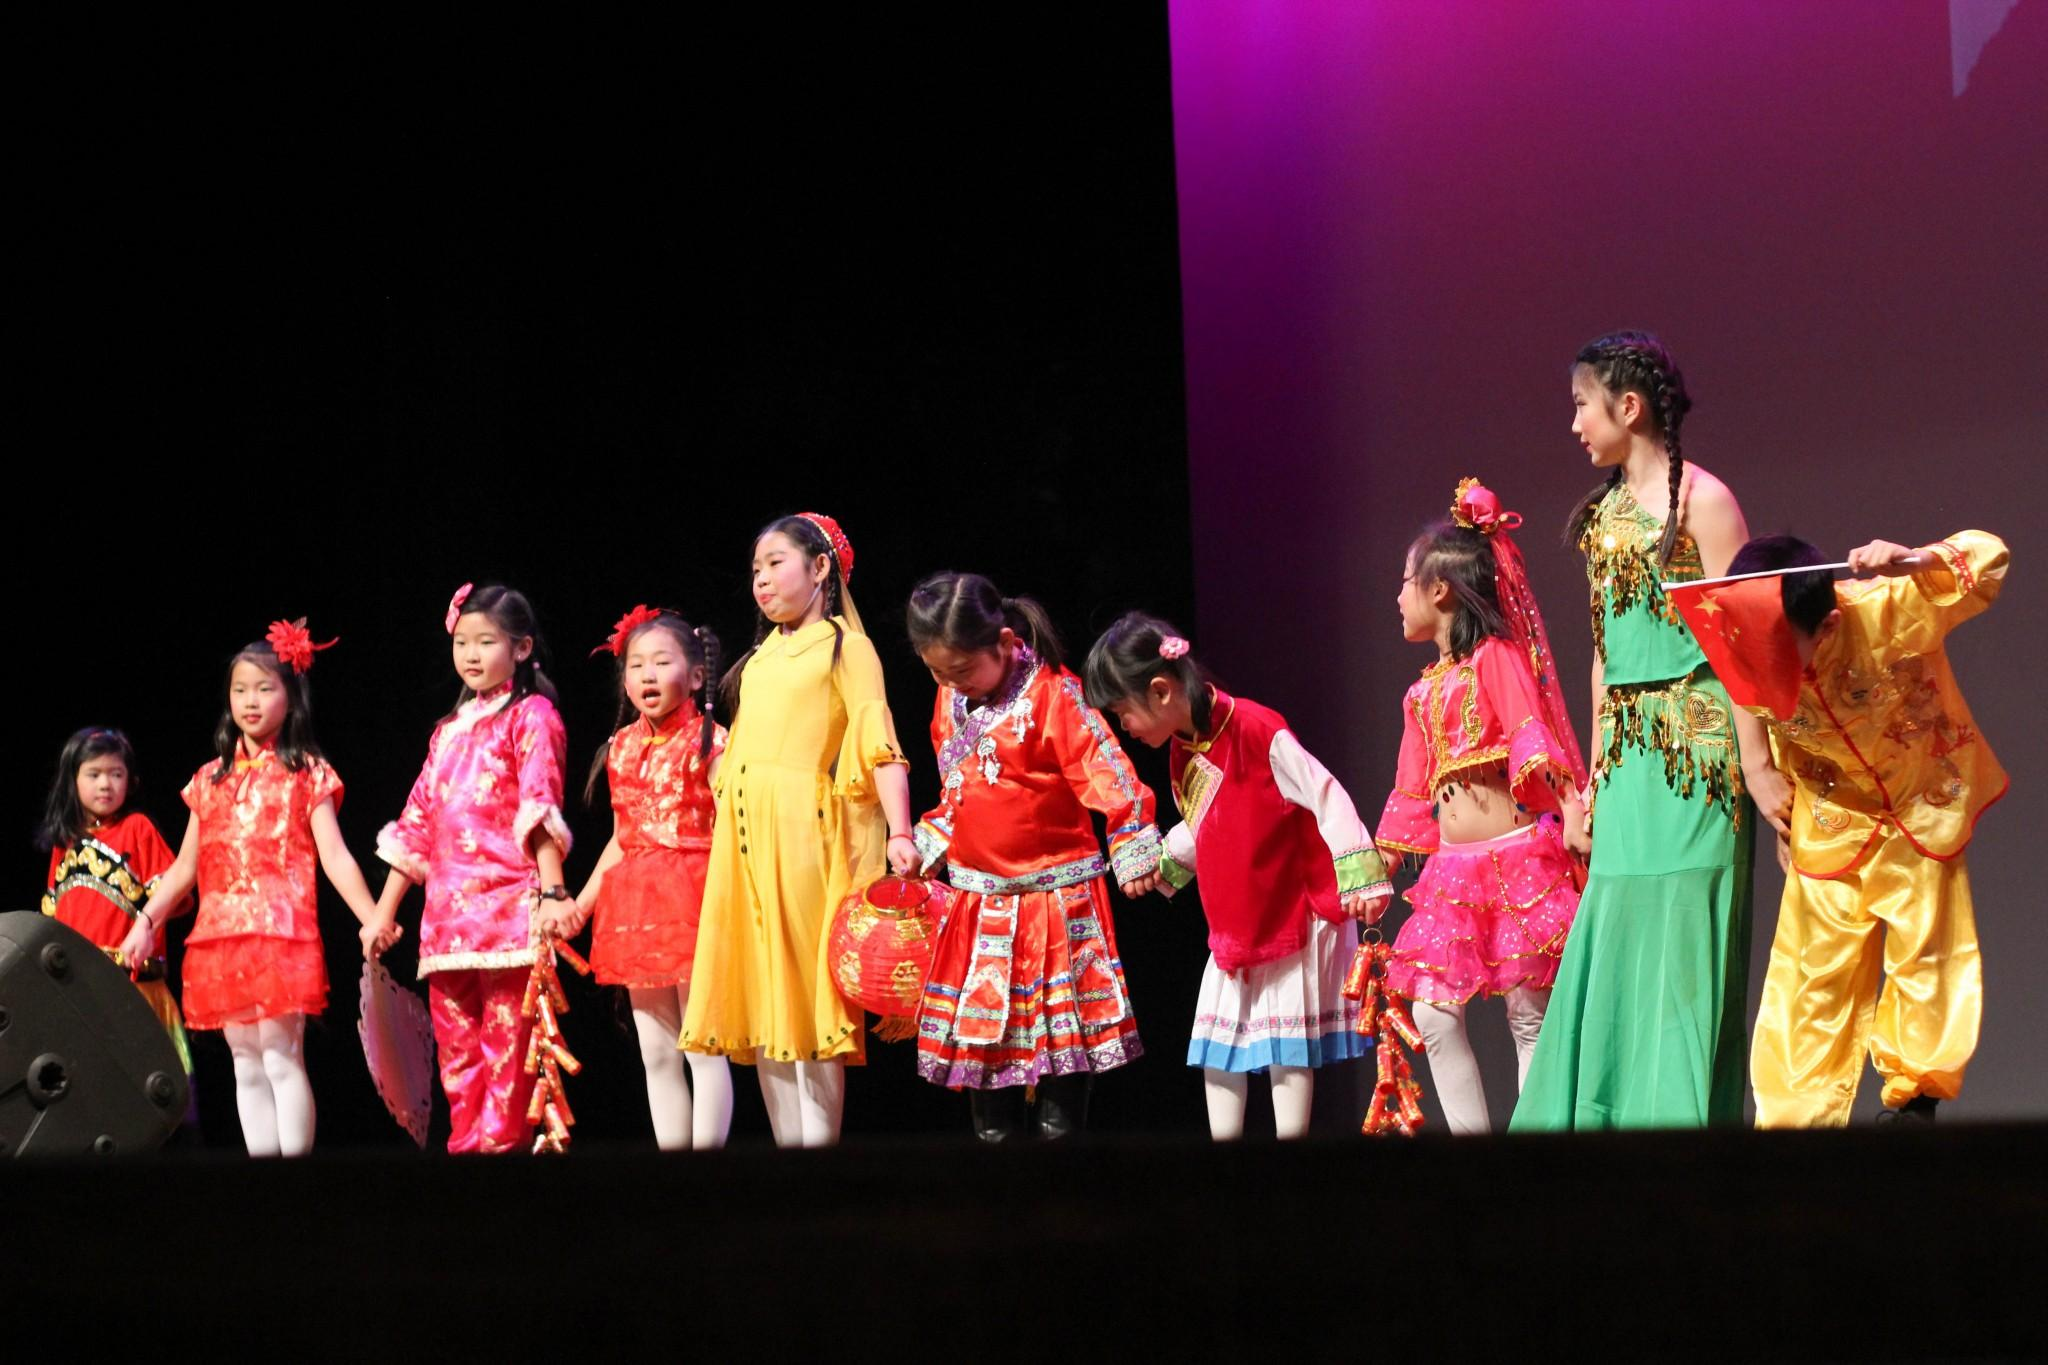 Students of the Hoaxing Chinese School display a variety of traditional Chinese clothing styles. The fashion show was a part of the Chinese New Year celebration at the Lincoln center Sunday evening. Photo by Jenna Fischer.